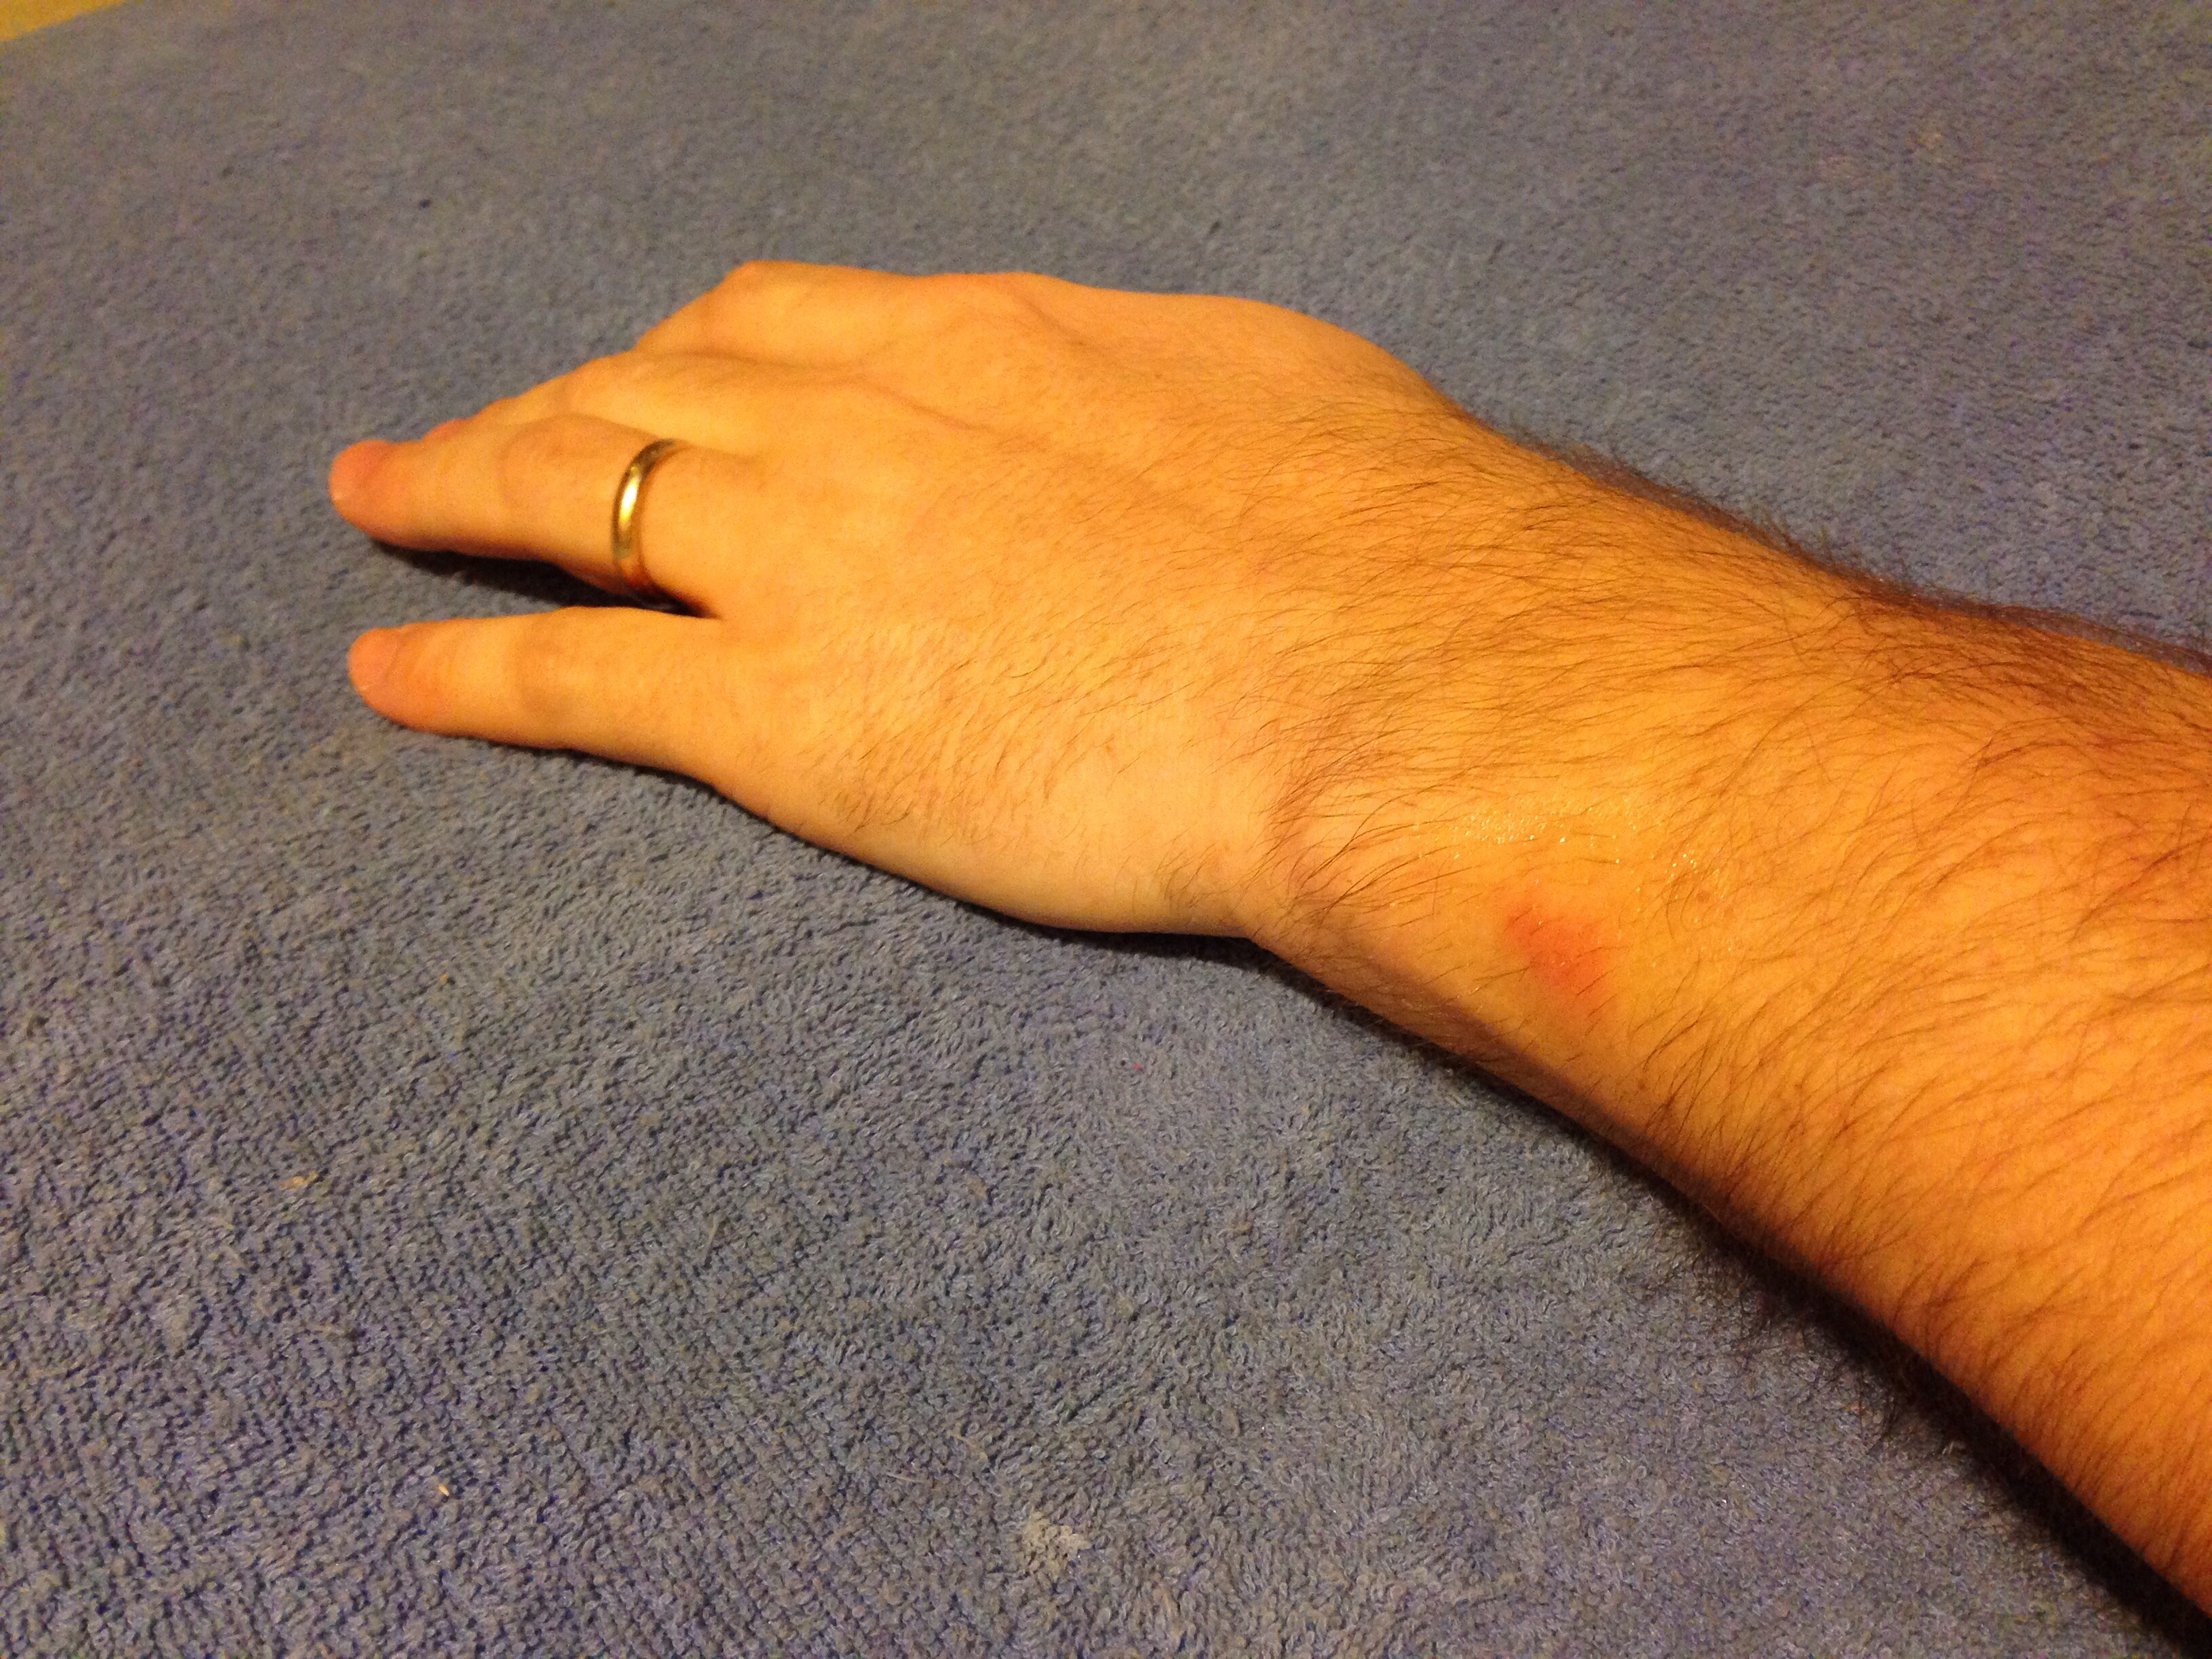 FitBit Force rash the day I stopped wearing it.